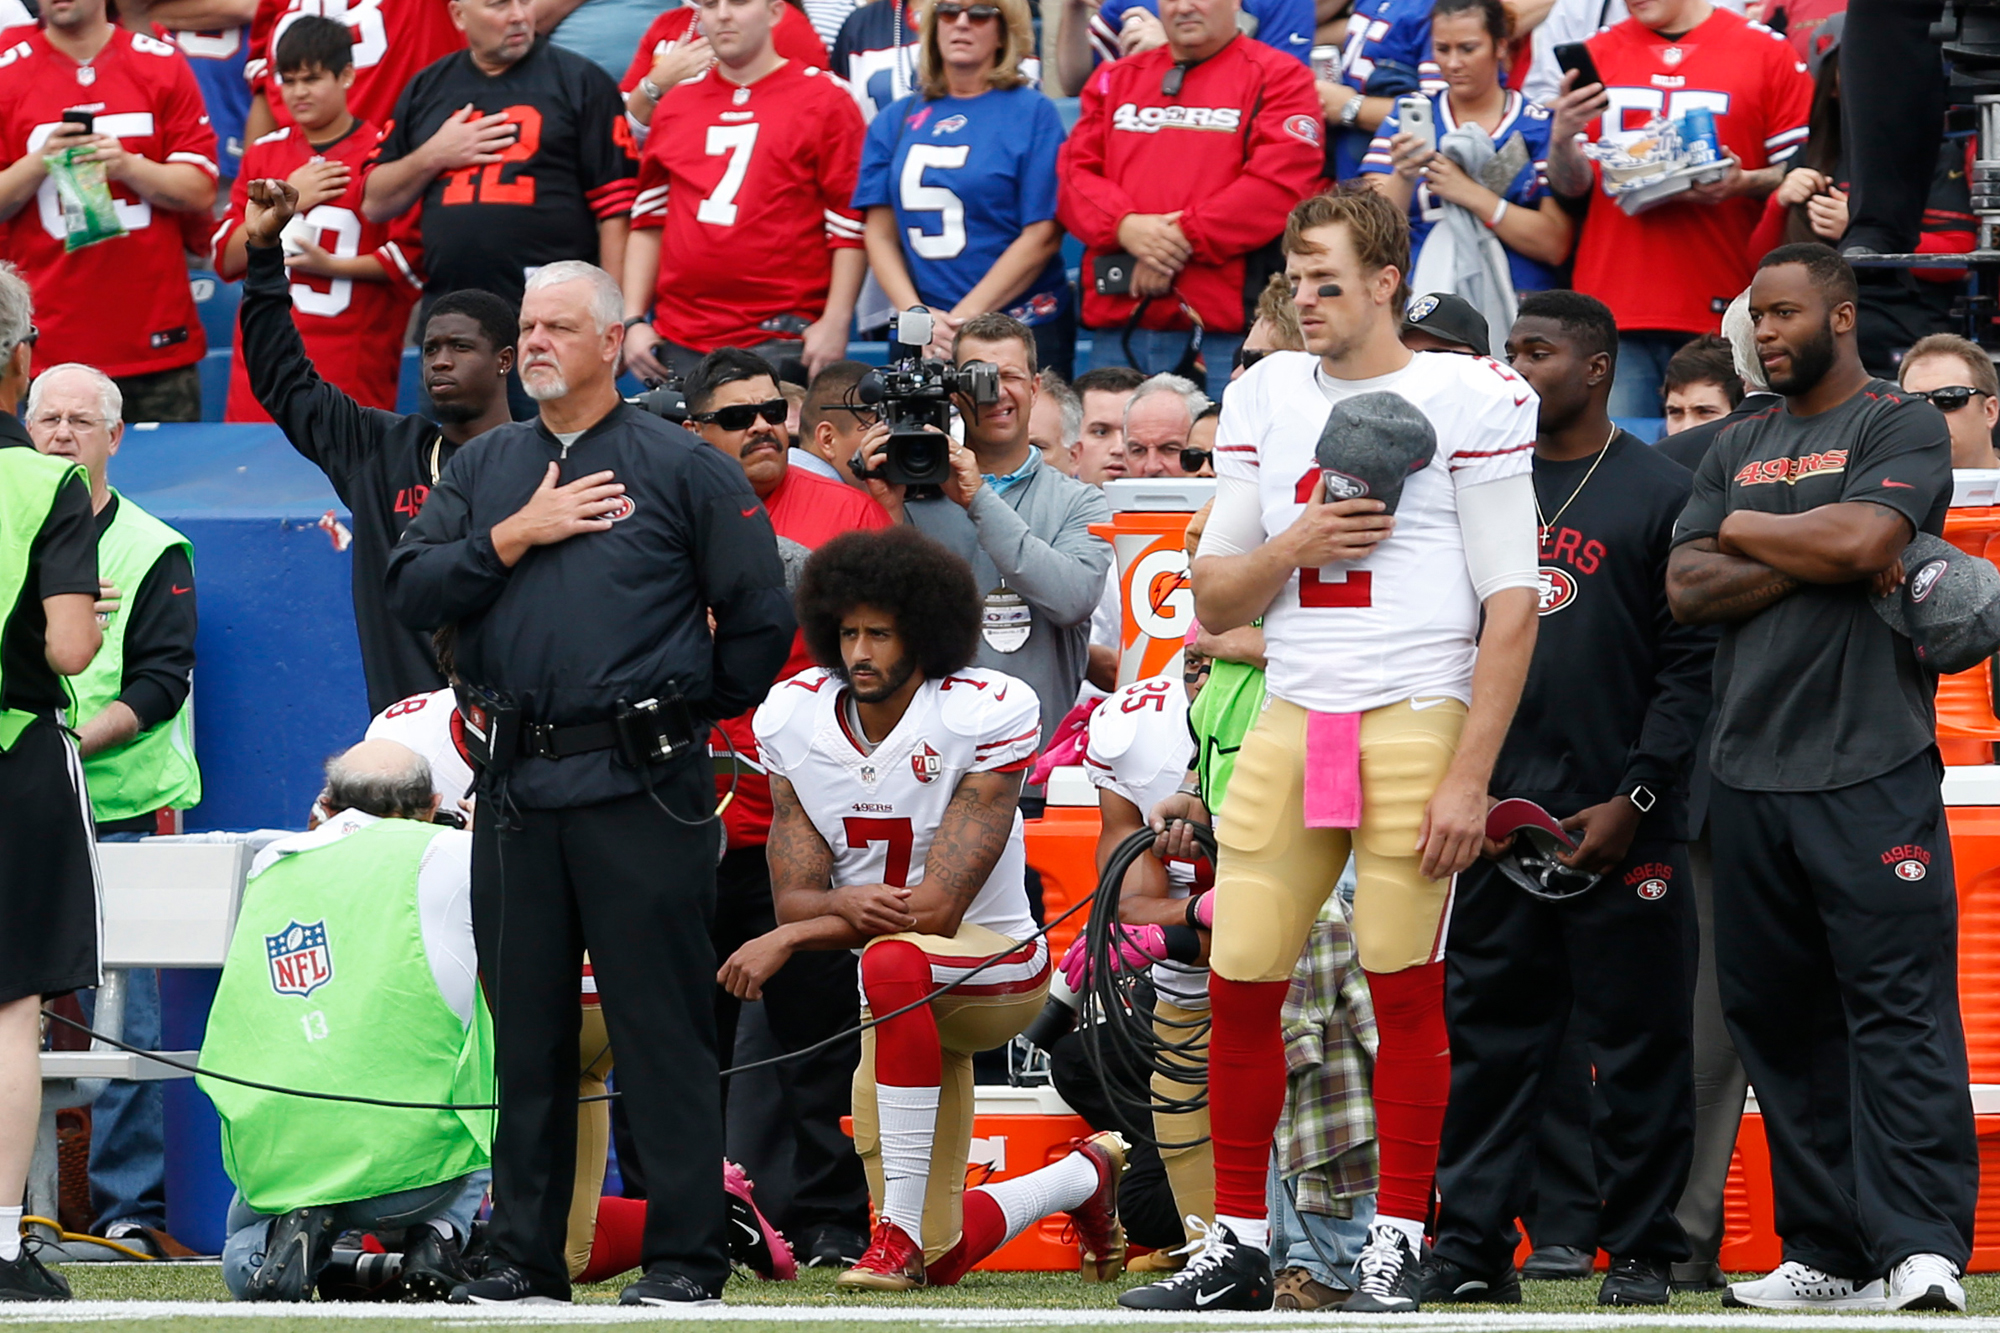 Orchard Park, NY, USA; San Francisco 49ers quarterback Colin Kaepernick (7) and quarterback Blaine Gabbert (2) react before a game against the Buffalo Bills at New Era Field.